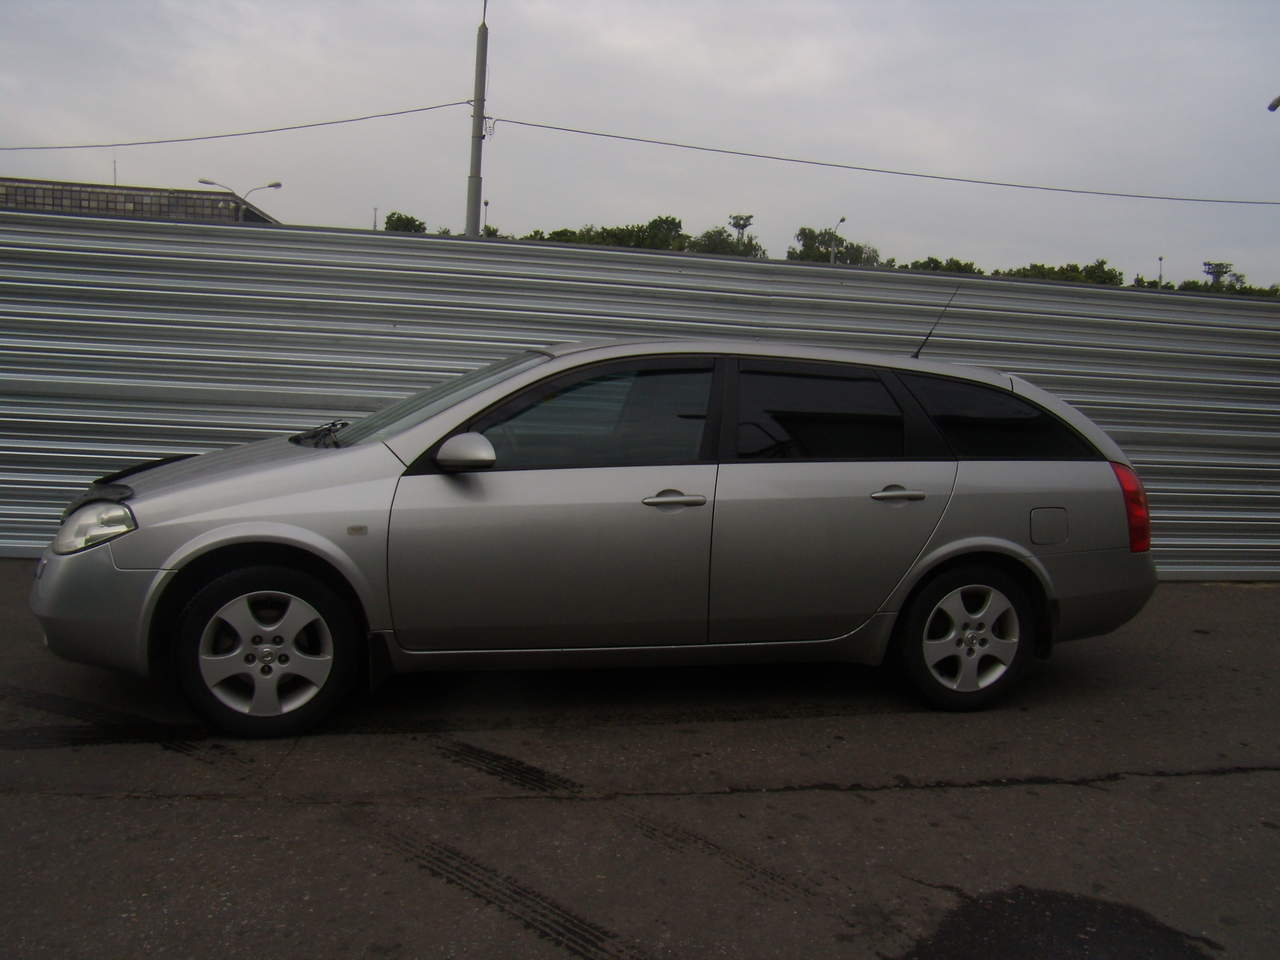 2004 nissan primera wagon pictures gasoline ff manual for sale. Black Bedroom Furniture Sets. Home Design Ideas